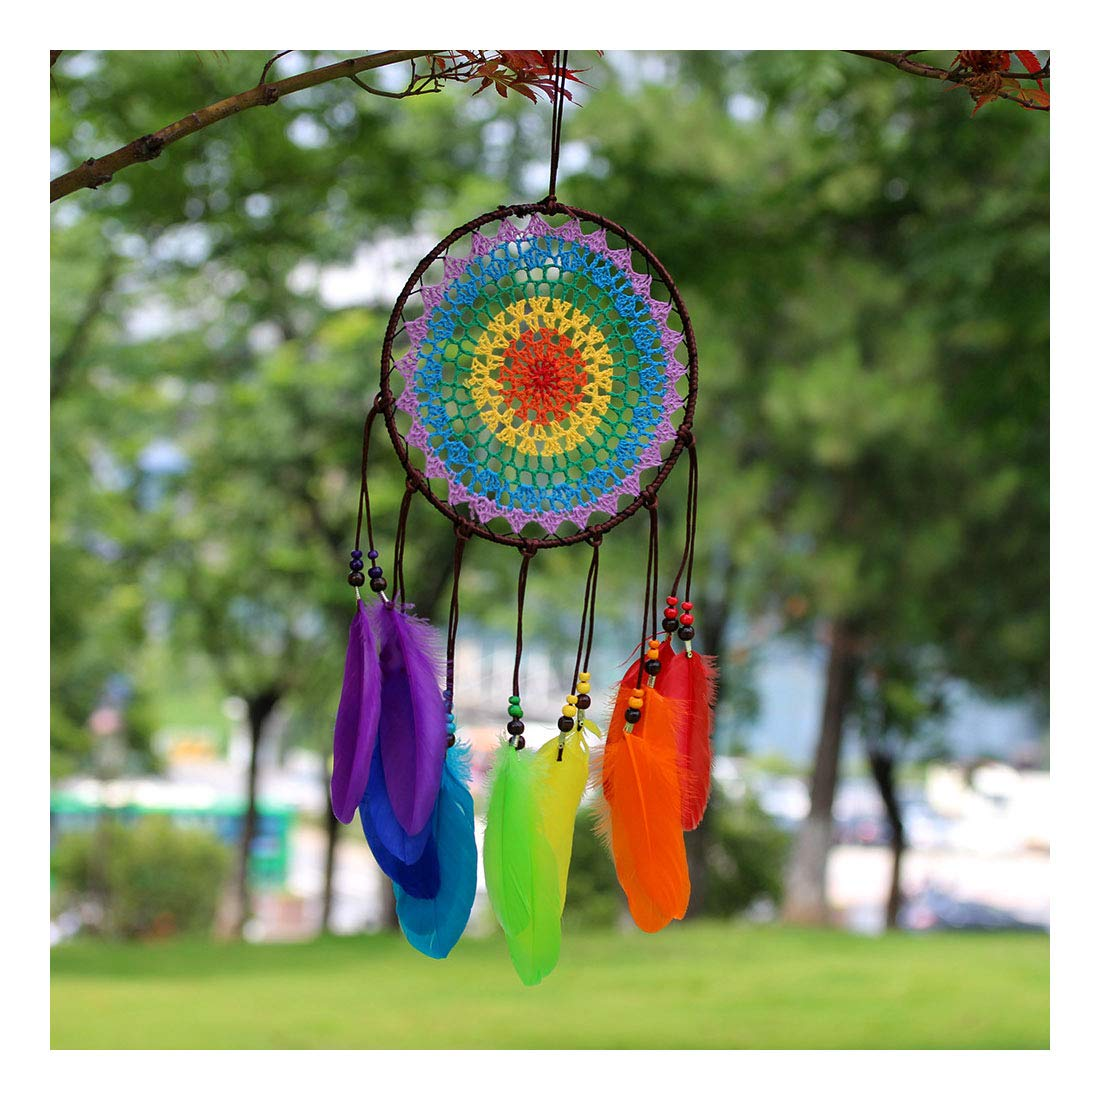 "MoreShow Colorful Premium Woven Handmade Dream Catcher Pendant Decoration House Ceremony Living Room Home Furnishing Accessories-Boho Wall Decor(7.9""W X 23.7""L)"